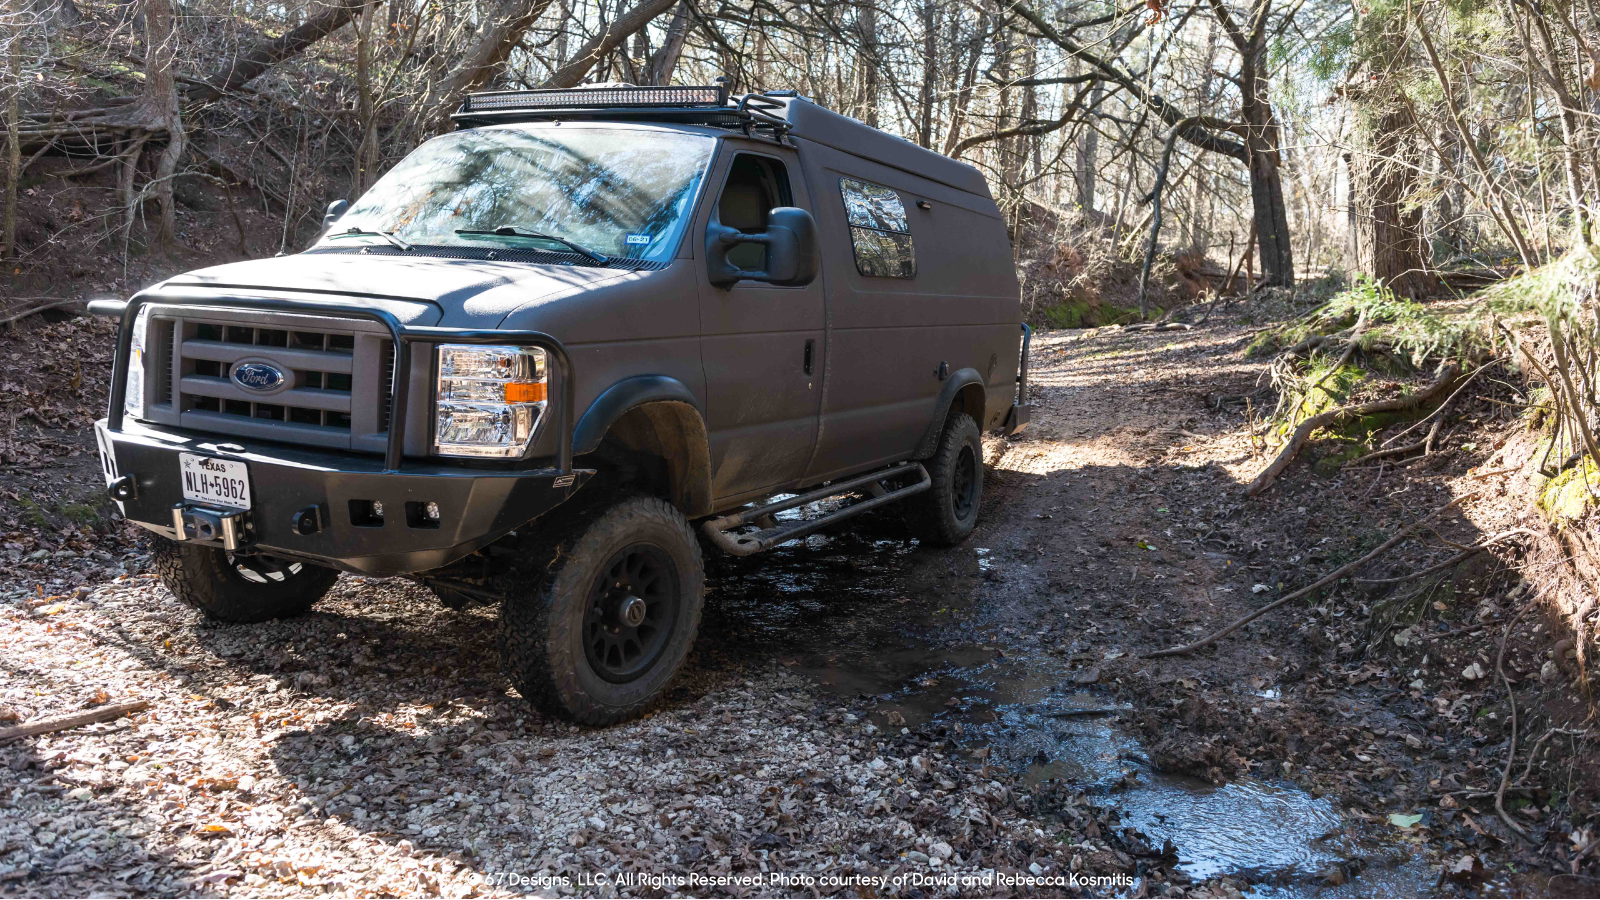 Ford overlanding in the woods